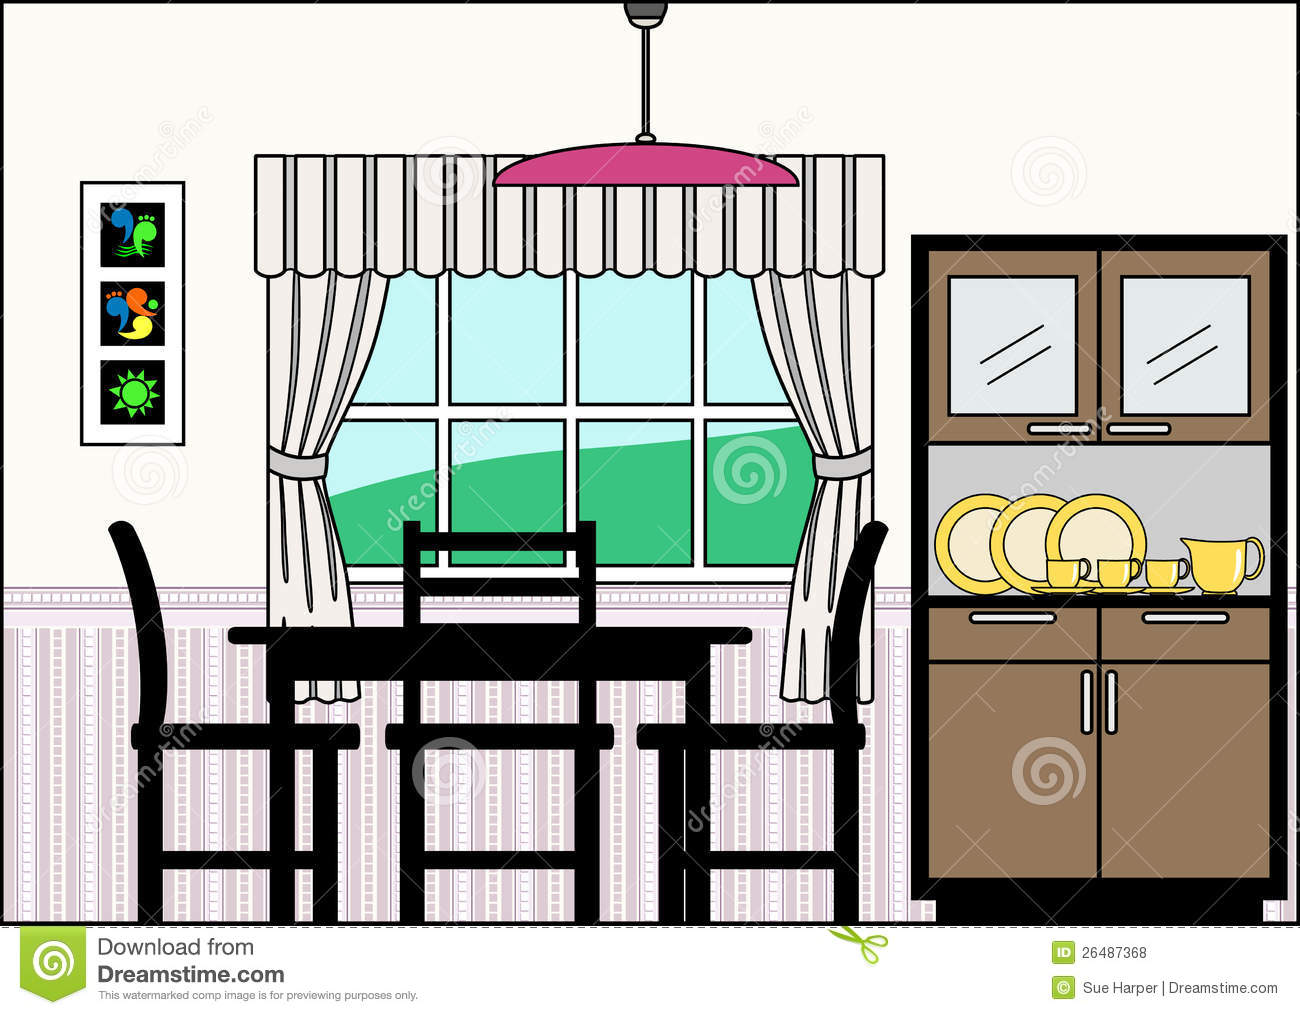 Clip Art Kitchen Table Dining Room With Furniture And